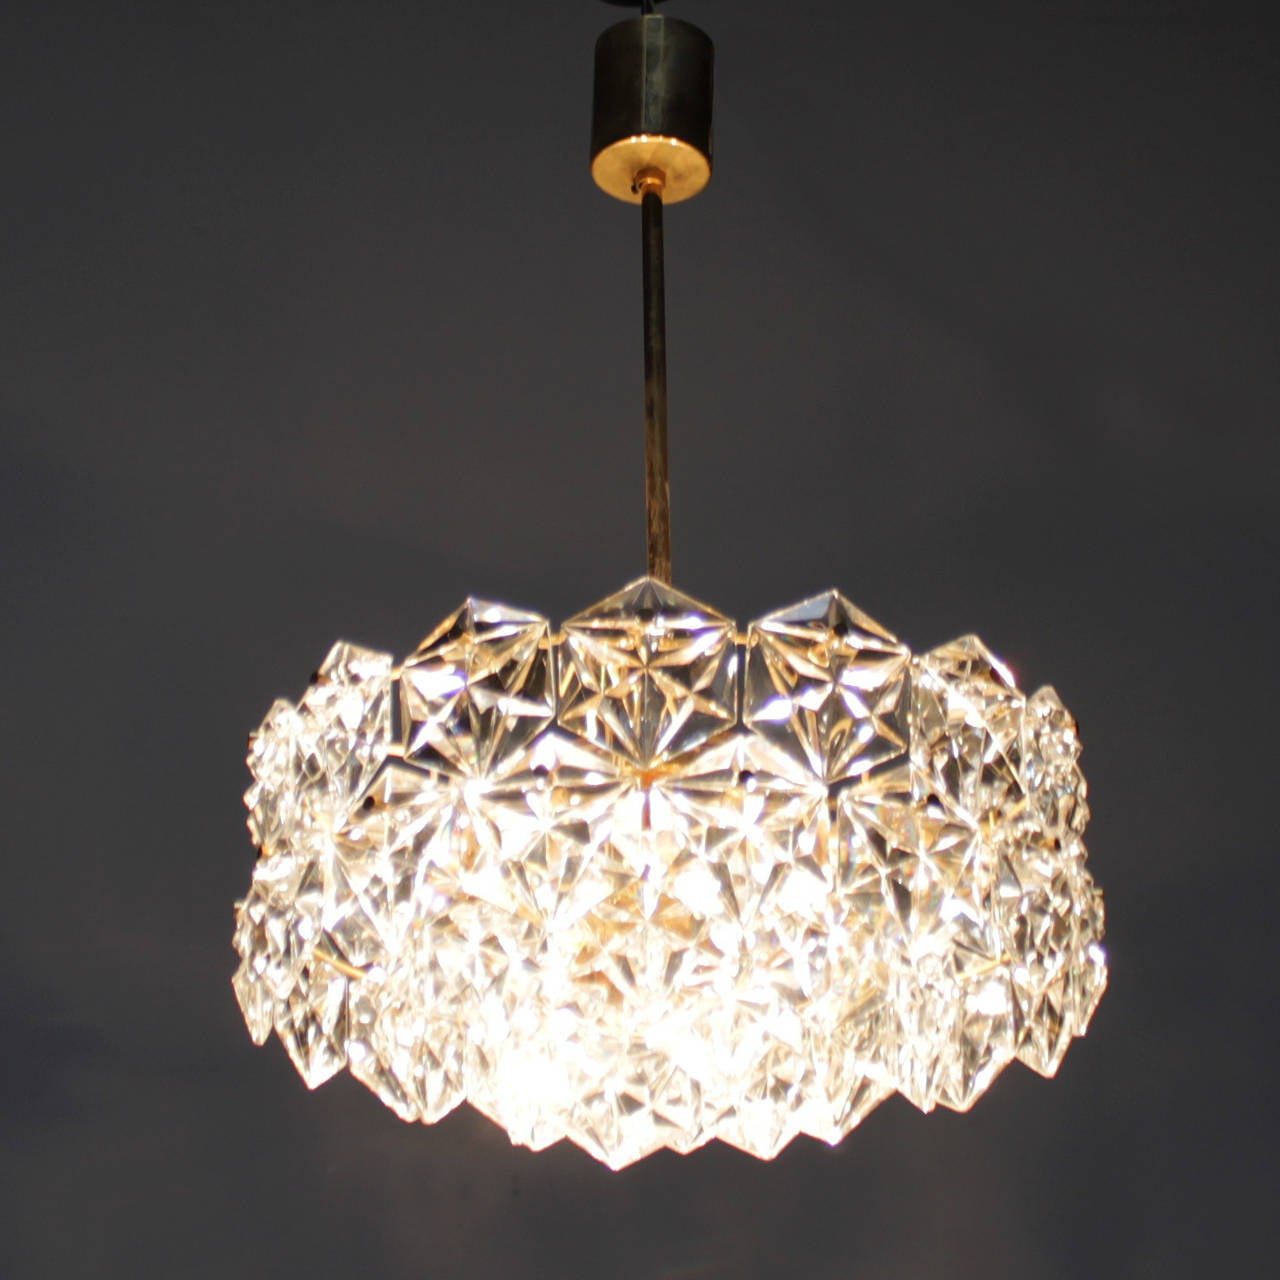 Gold-Plated Kinkeldey Chandelier with Hexagonal Crystals at 1stdibs